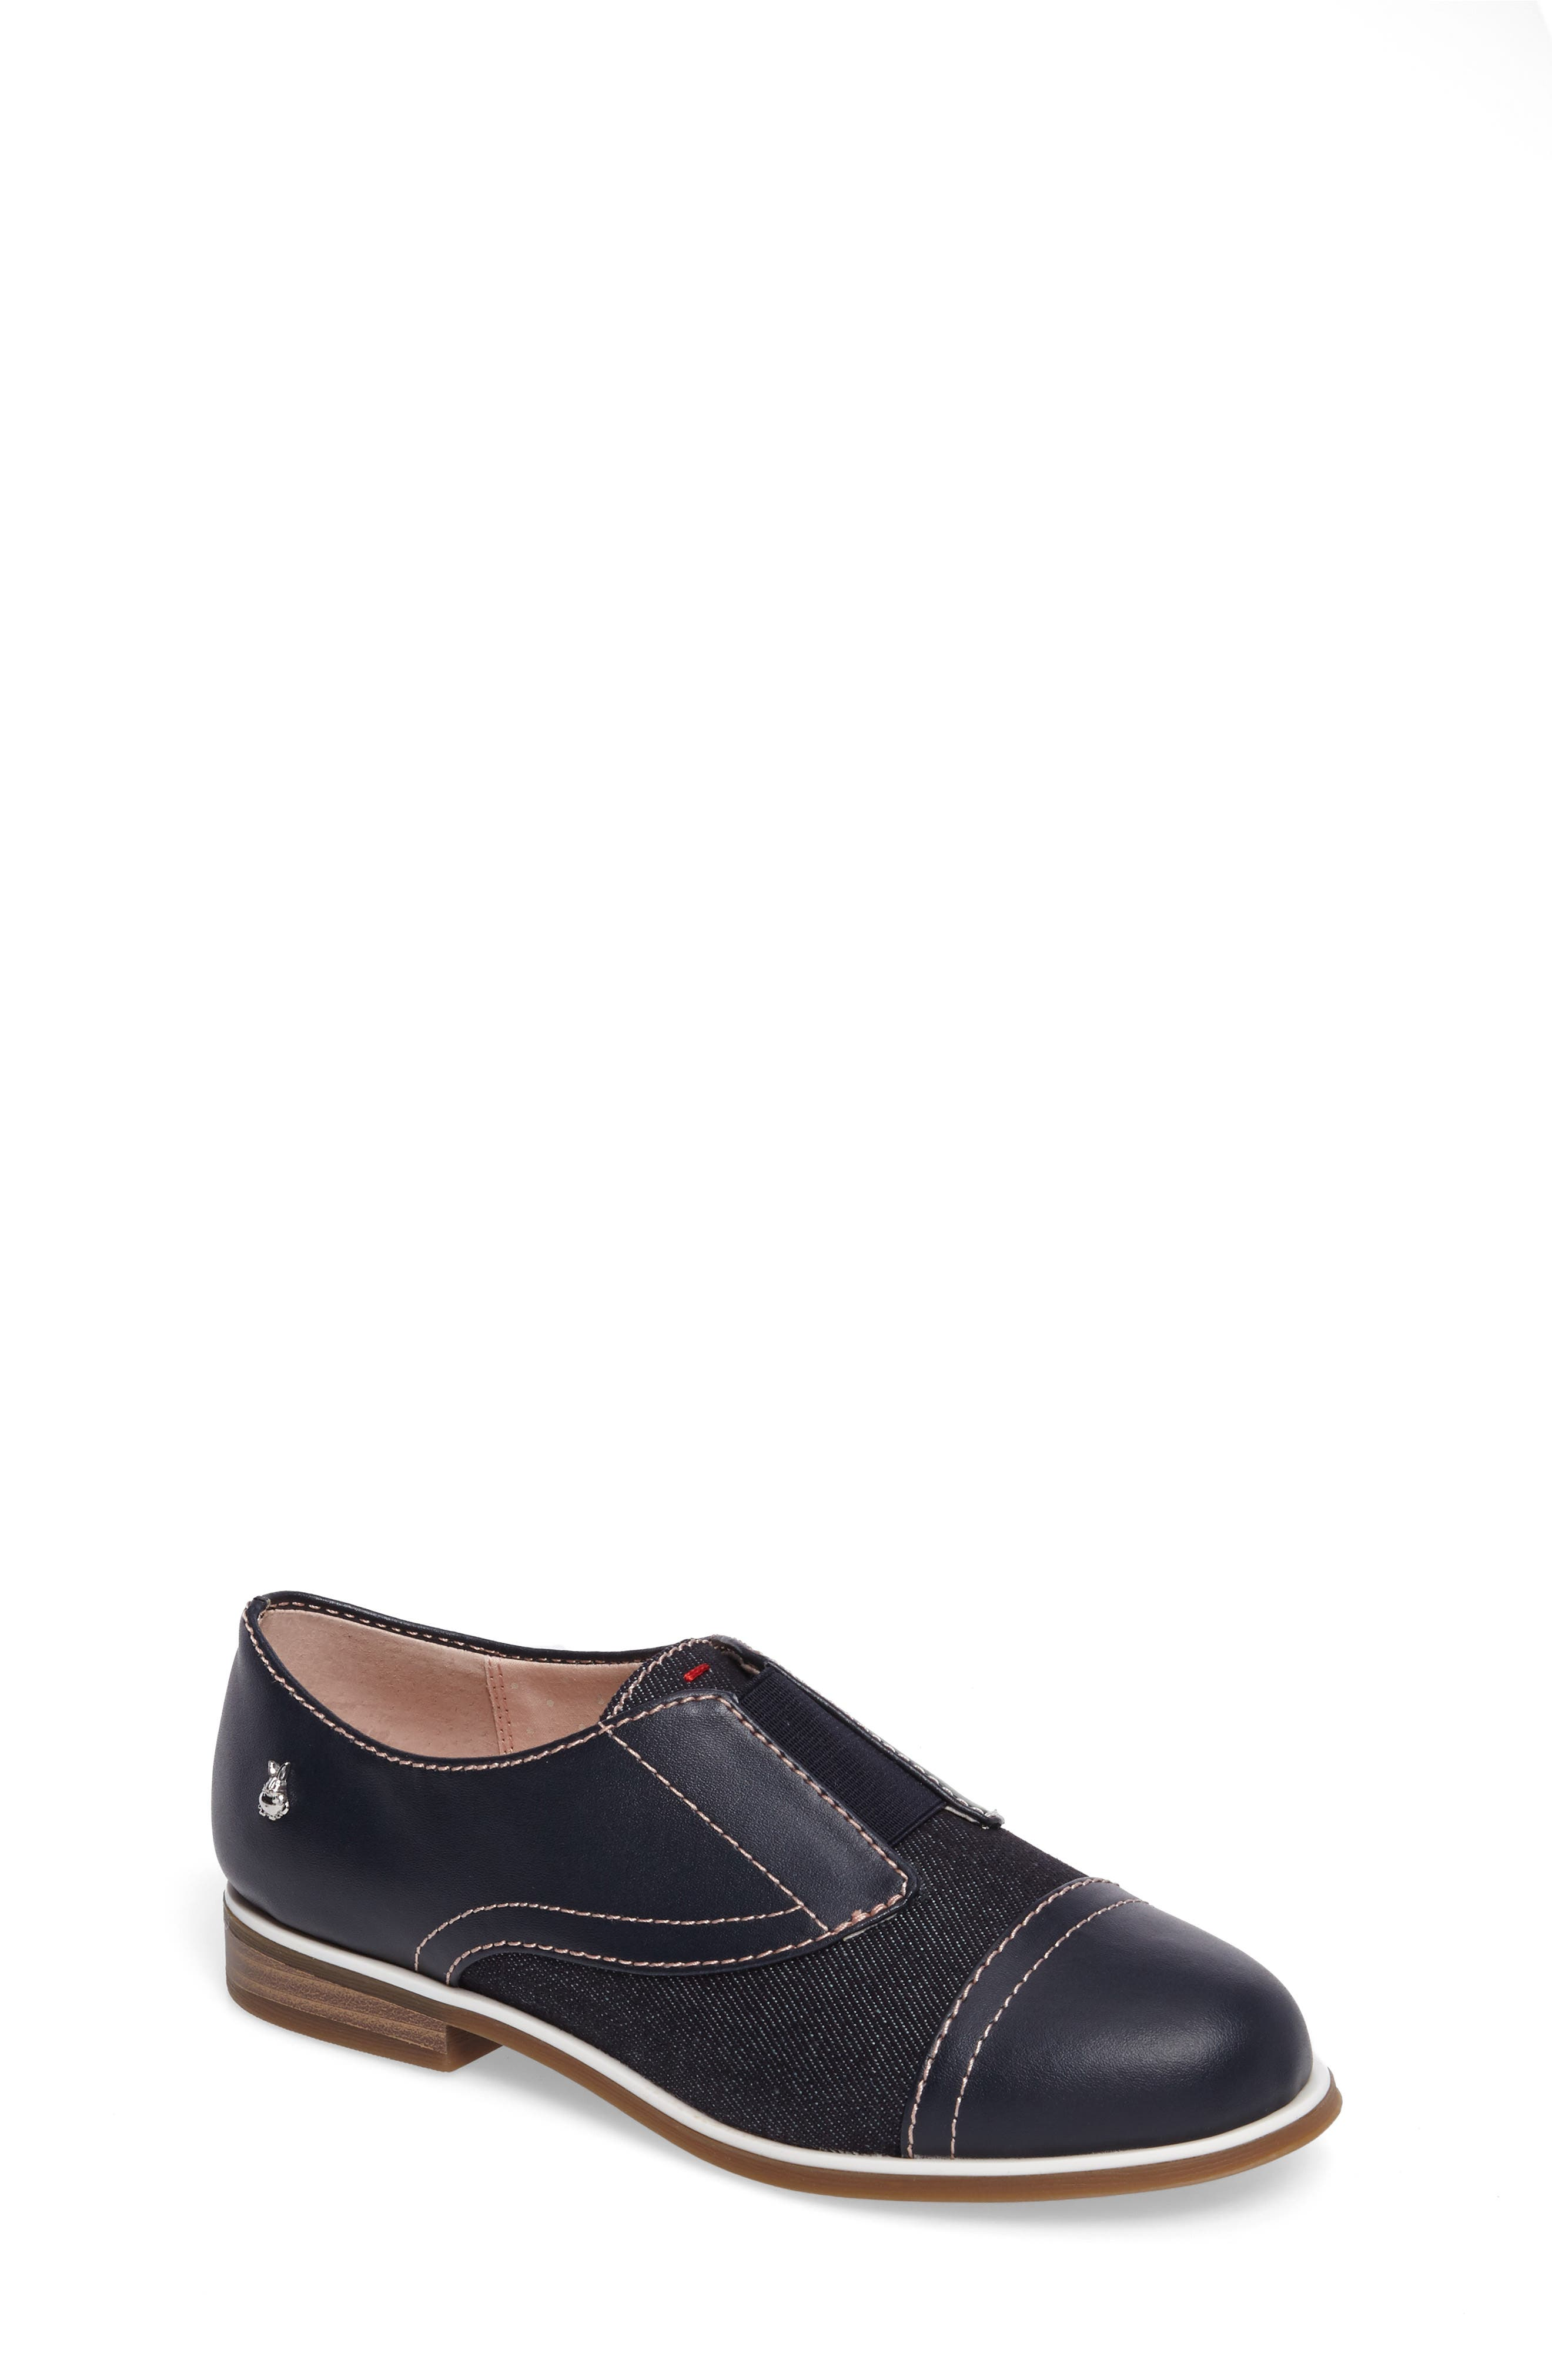 Main Image - ED Ellen Degeneres Kassie Laceless Cap Toe Oxford (Toddler, Little Kid & Big Kid)